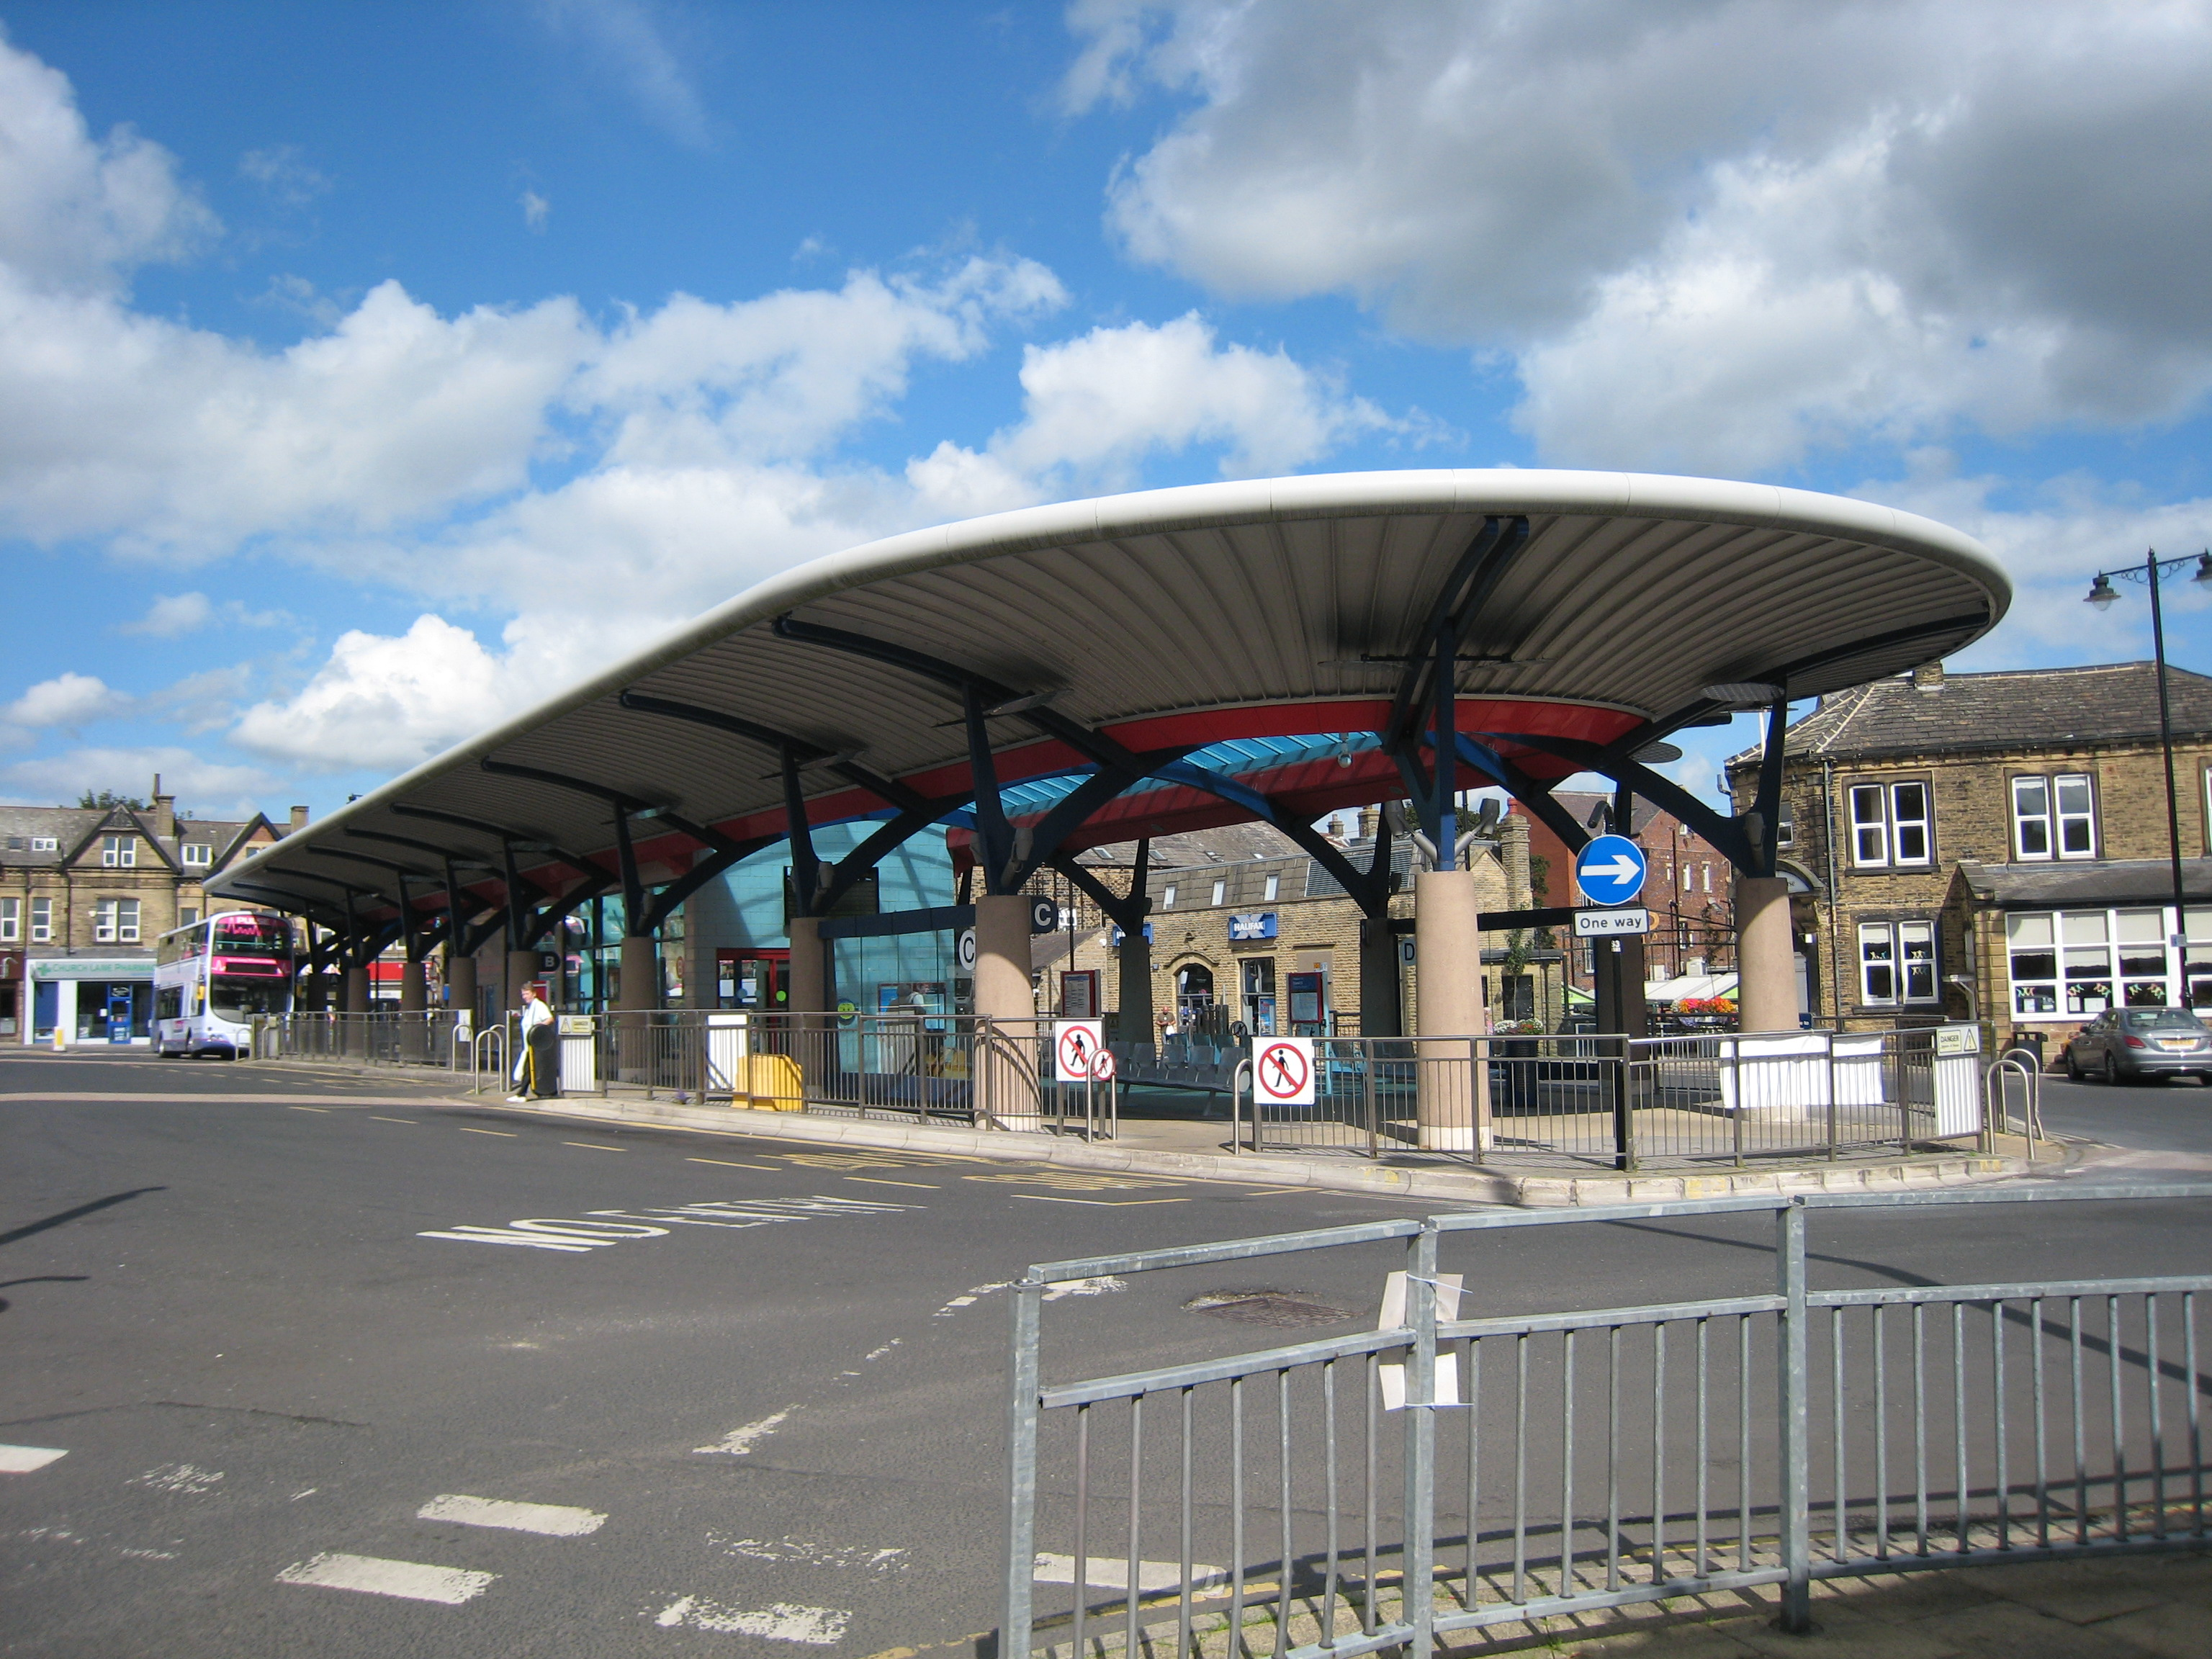 File:Pudsey Bus Station 2 September 2017 jpg - Wikimedia Commons